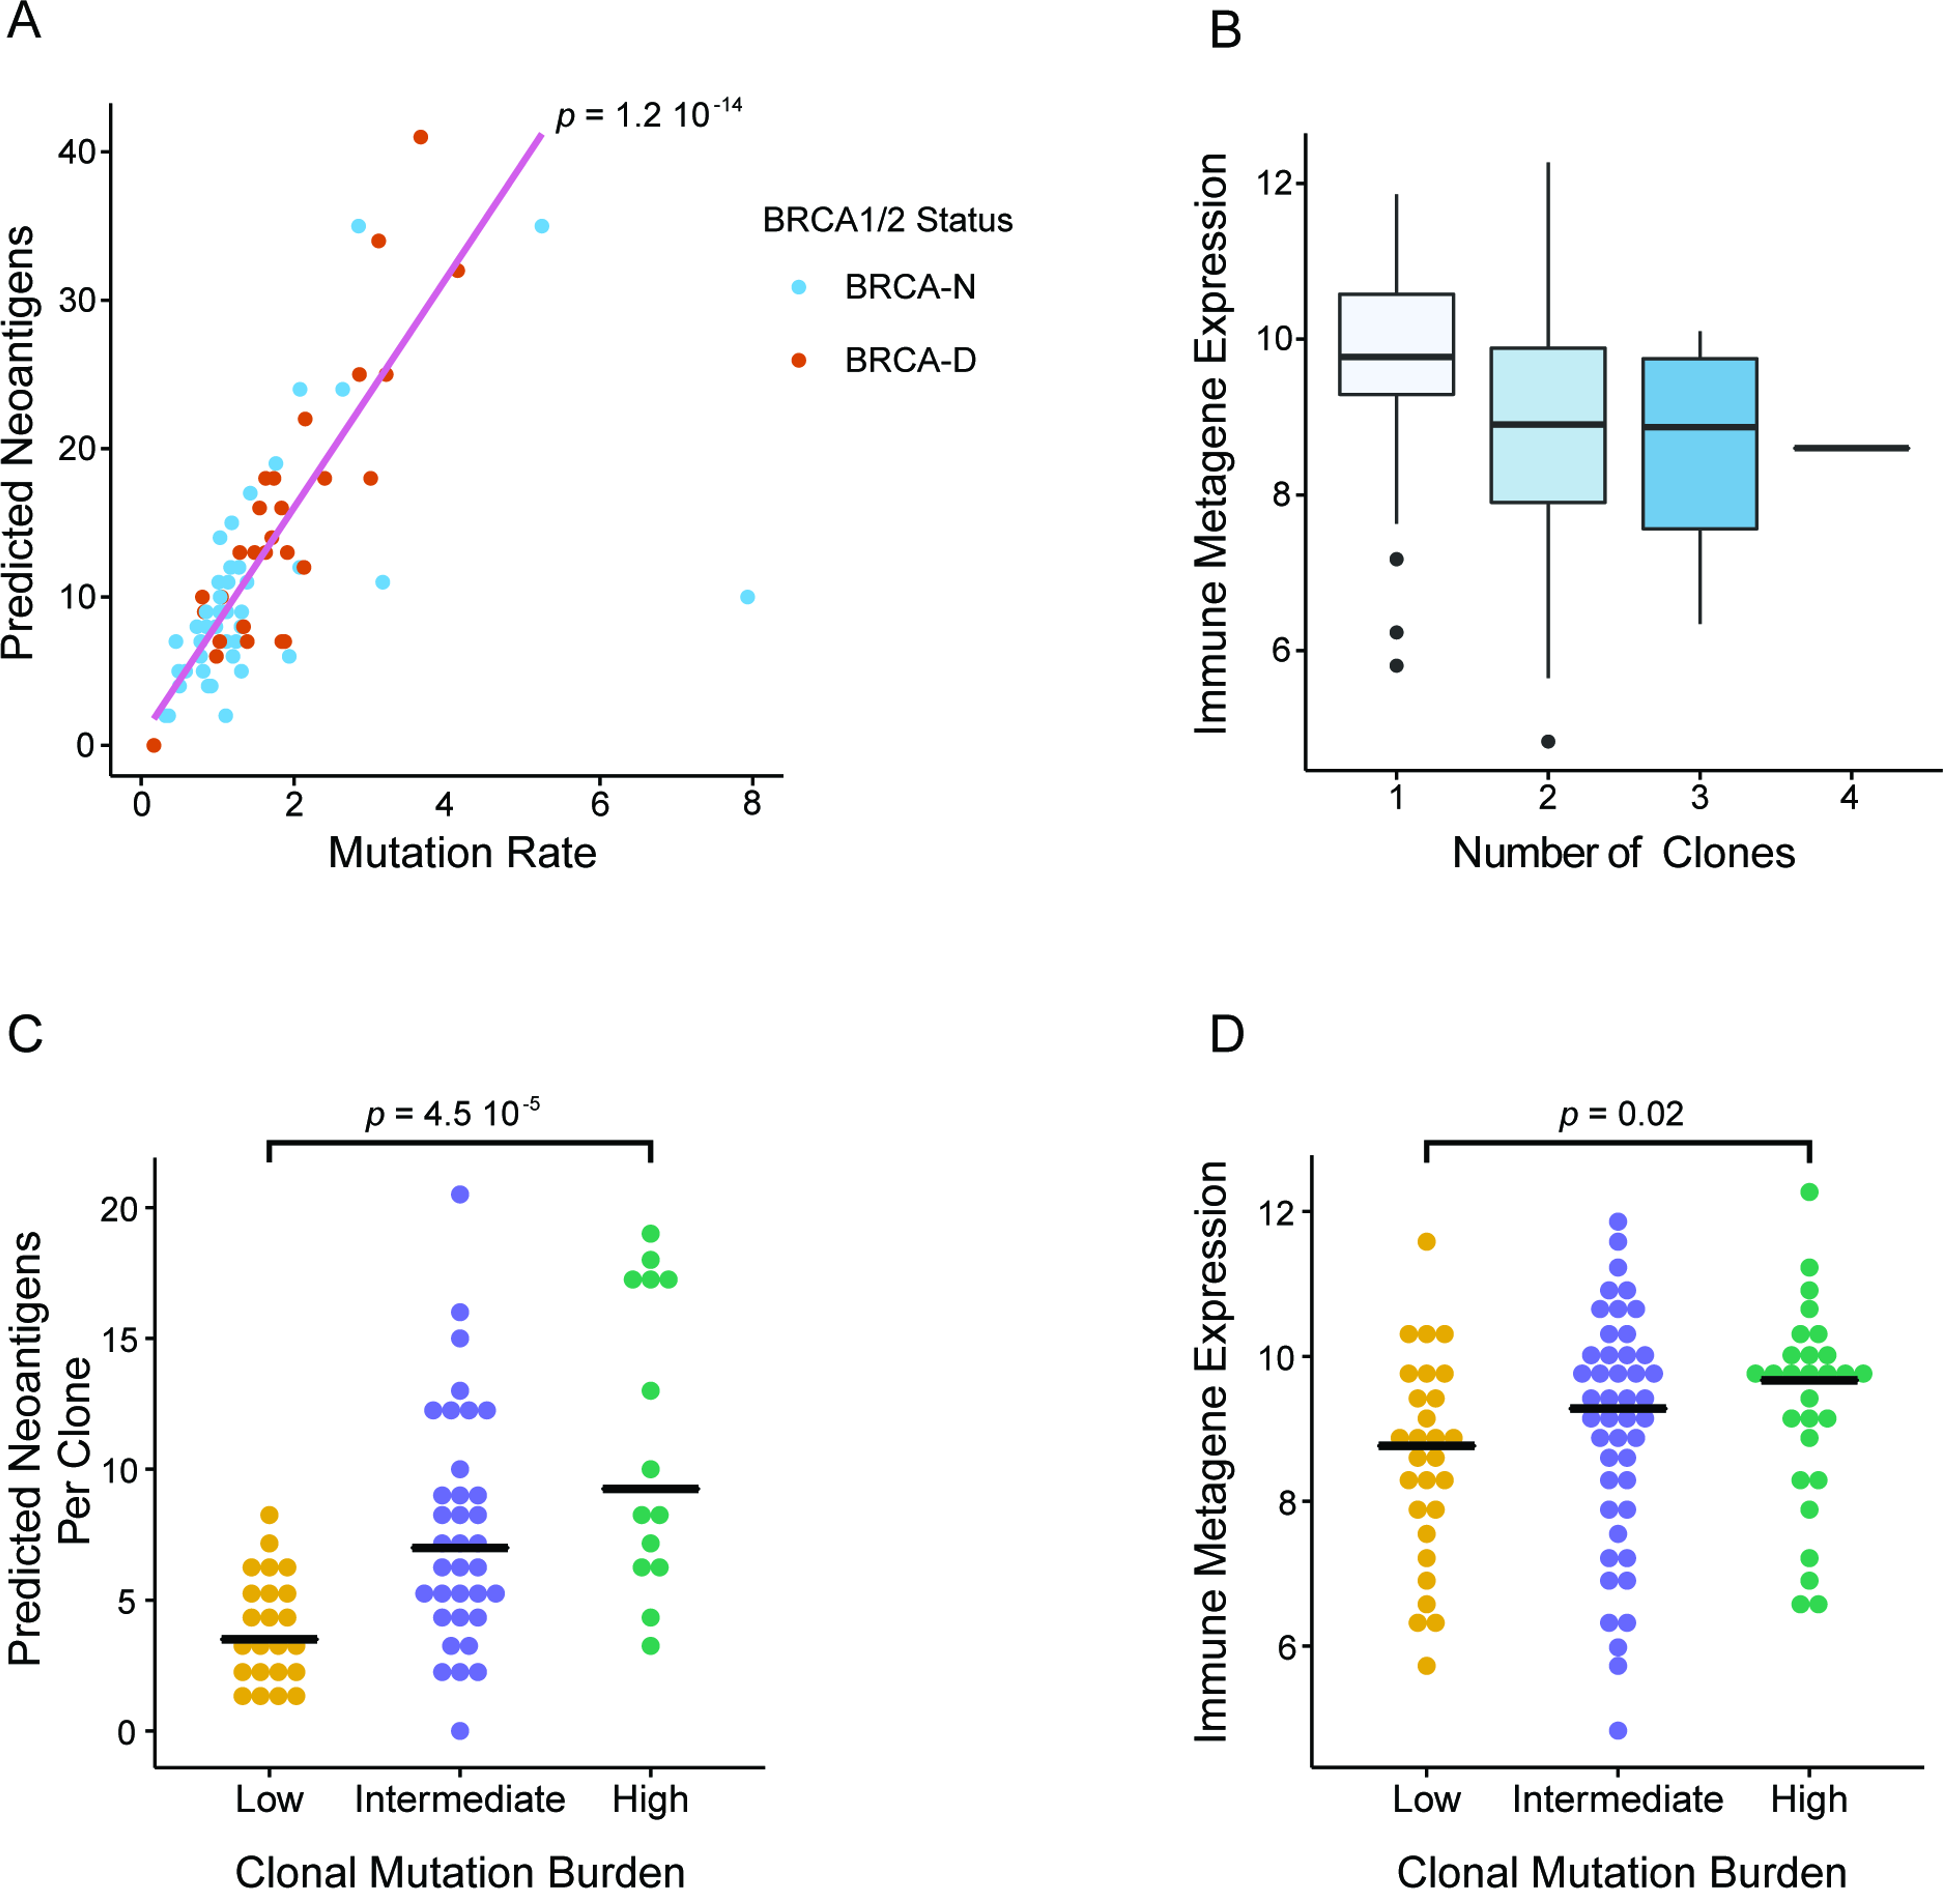 Clonal mutation burden and BRCA deficiency linked to immune activation in triple negative breast cancer.